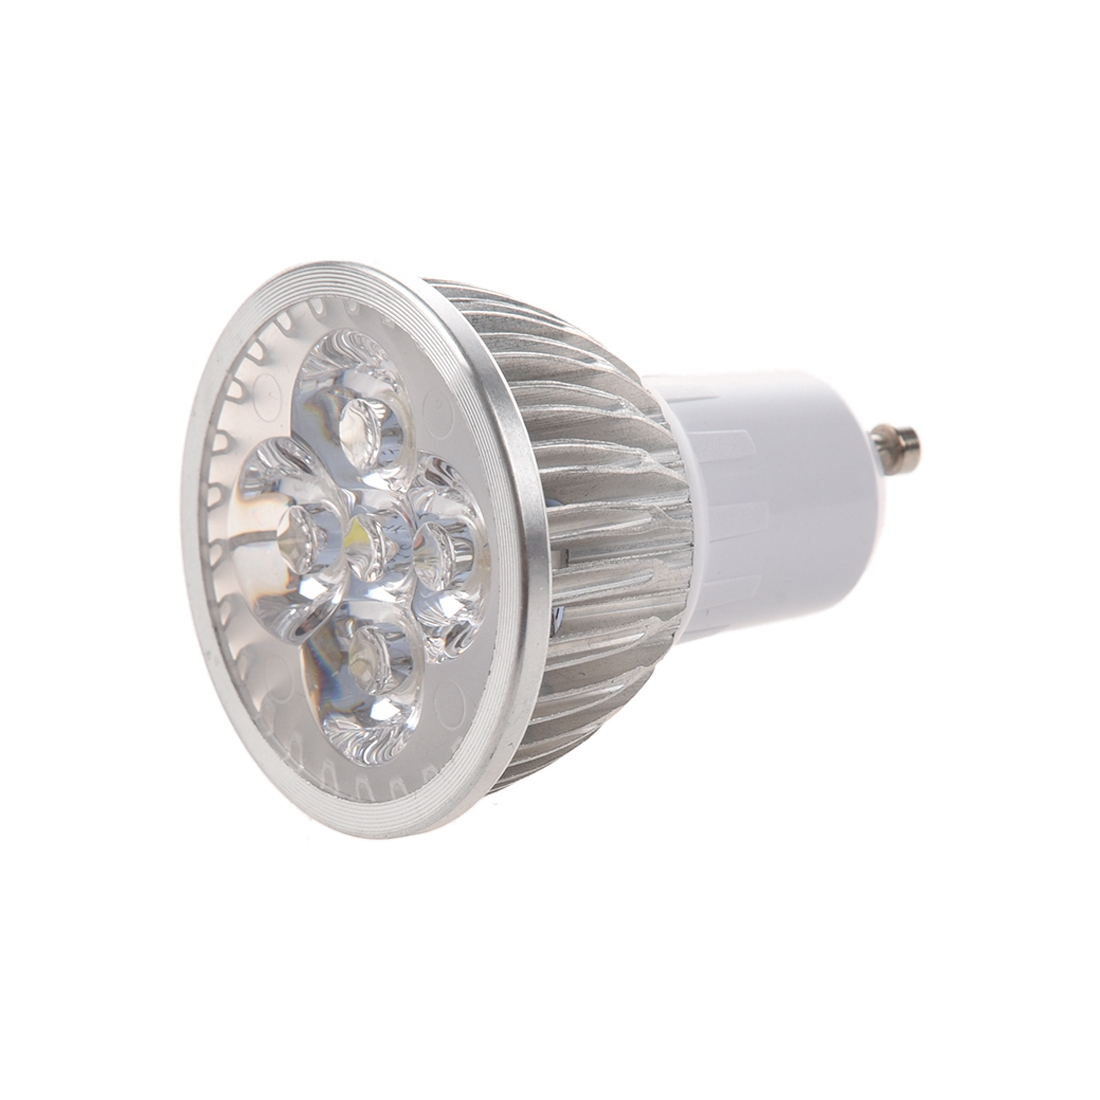 4 LED GU10 Light Bulb 4W Cold White 85-265V